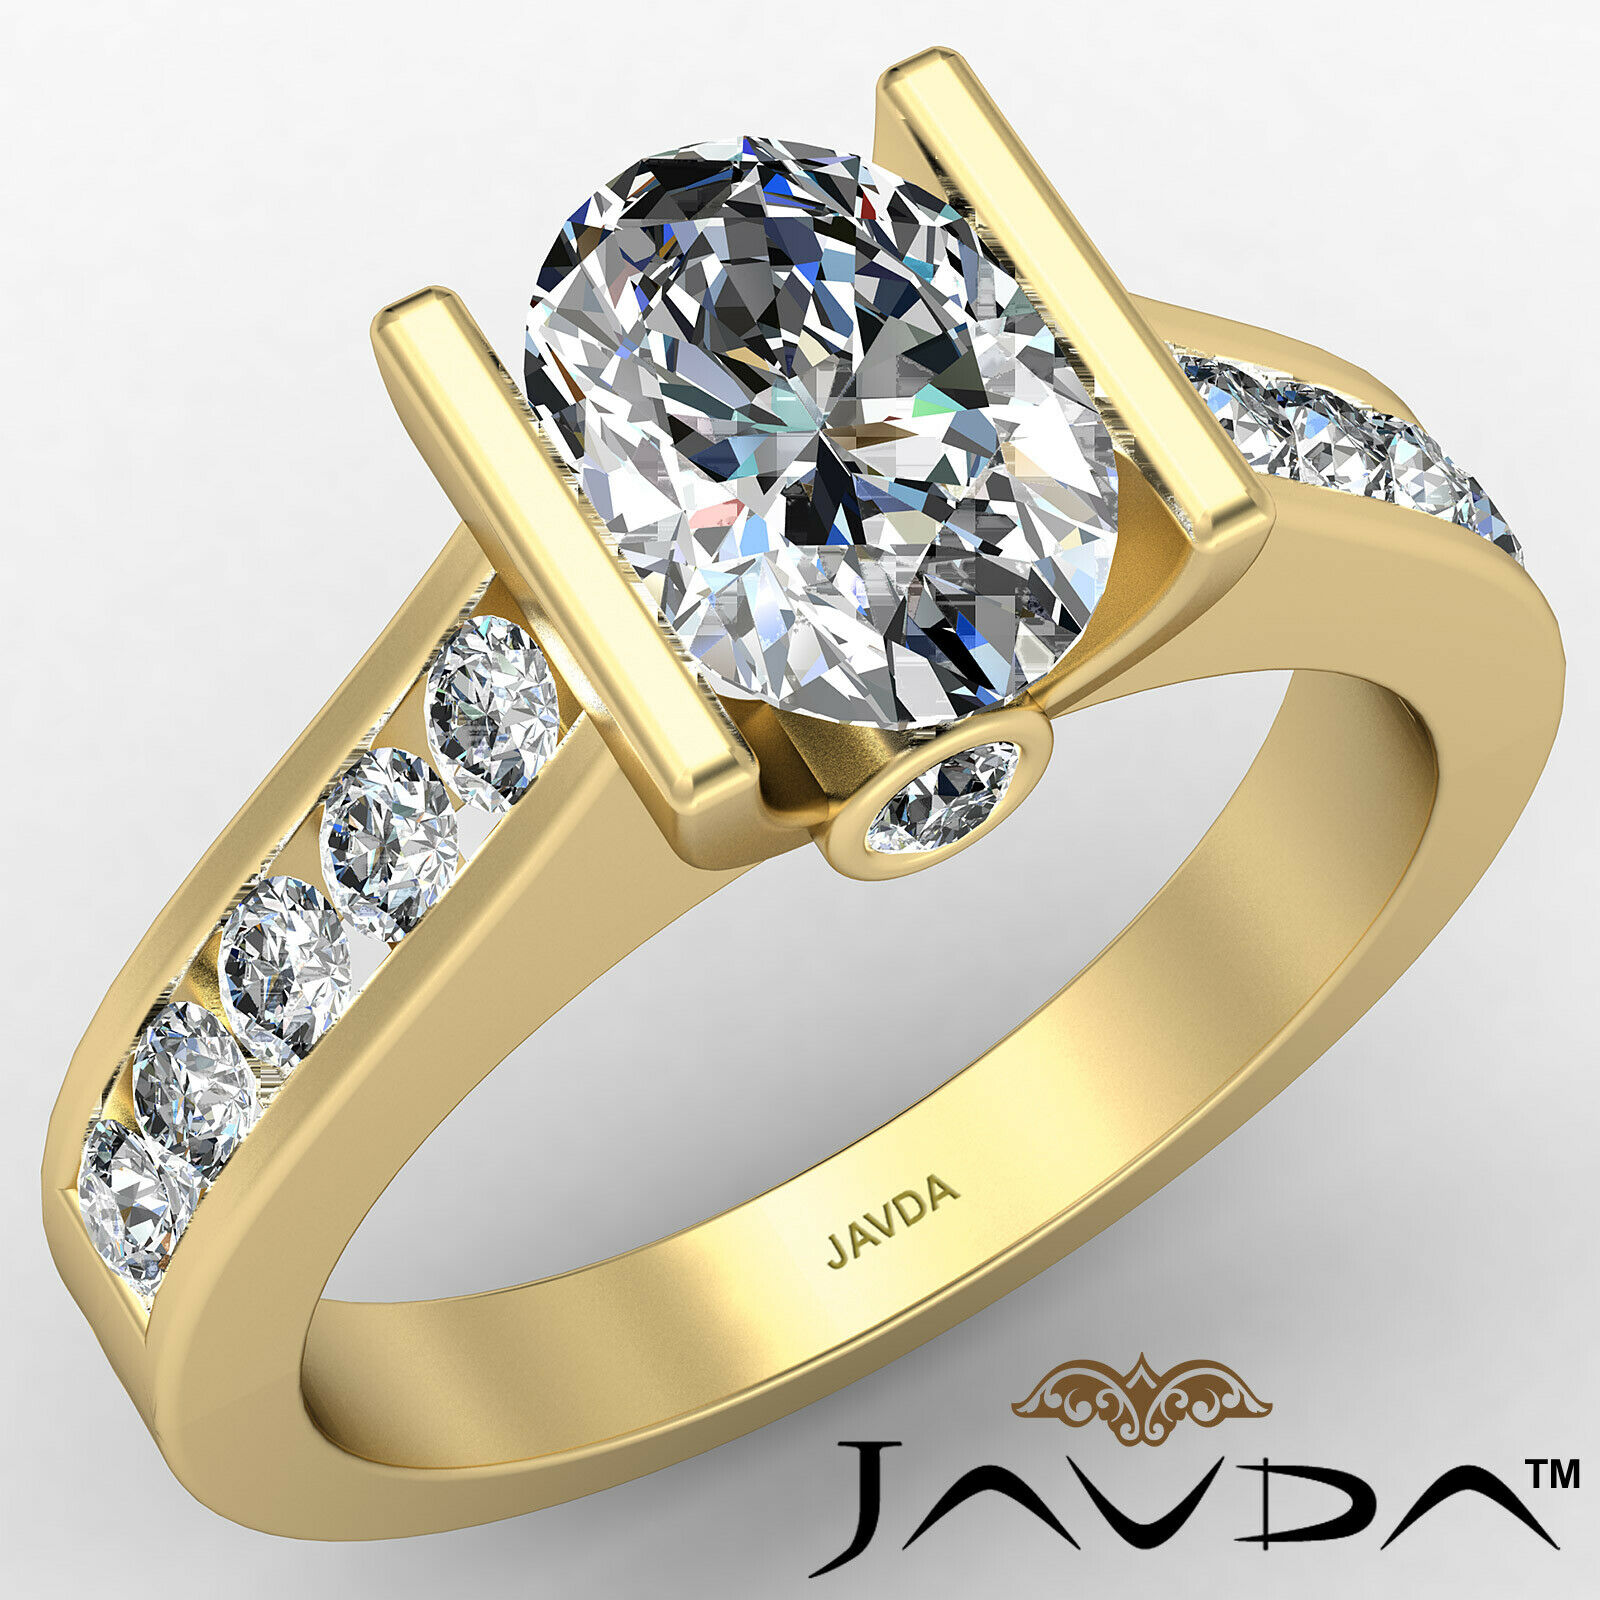 Oval Diamond Engagement Bezel Setting Ring GIA, E Color & SI2 clarity 1.4 ctw. 1